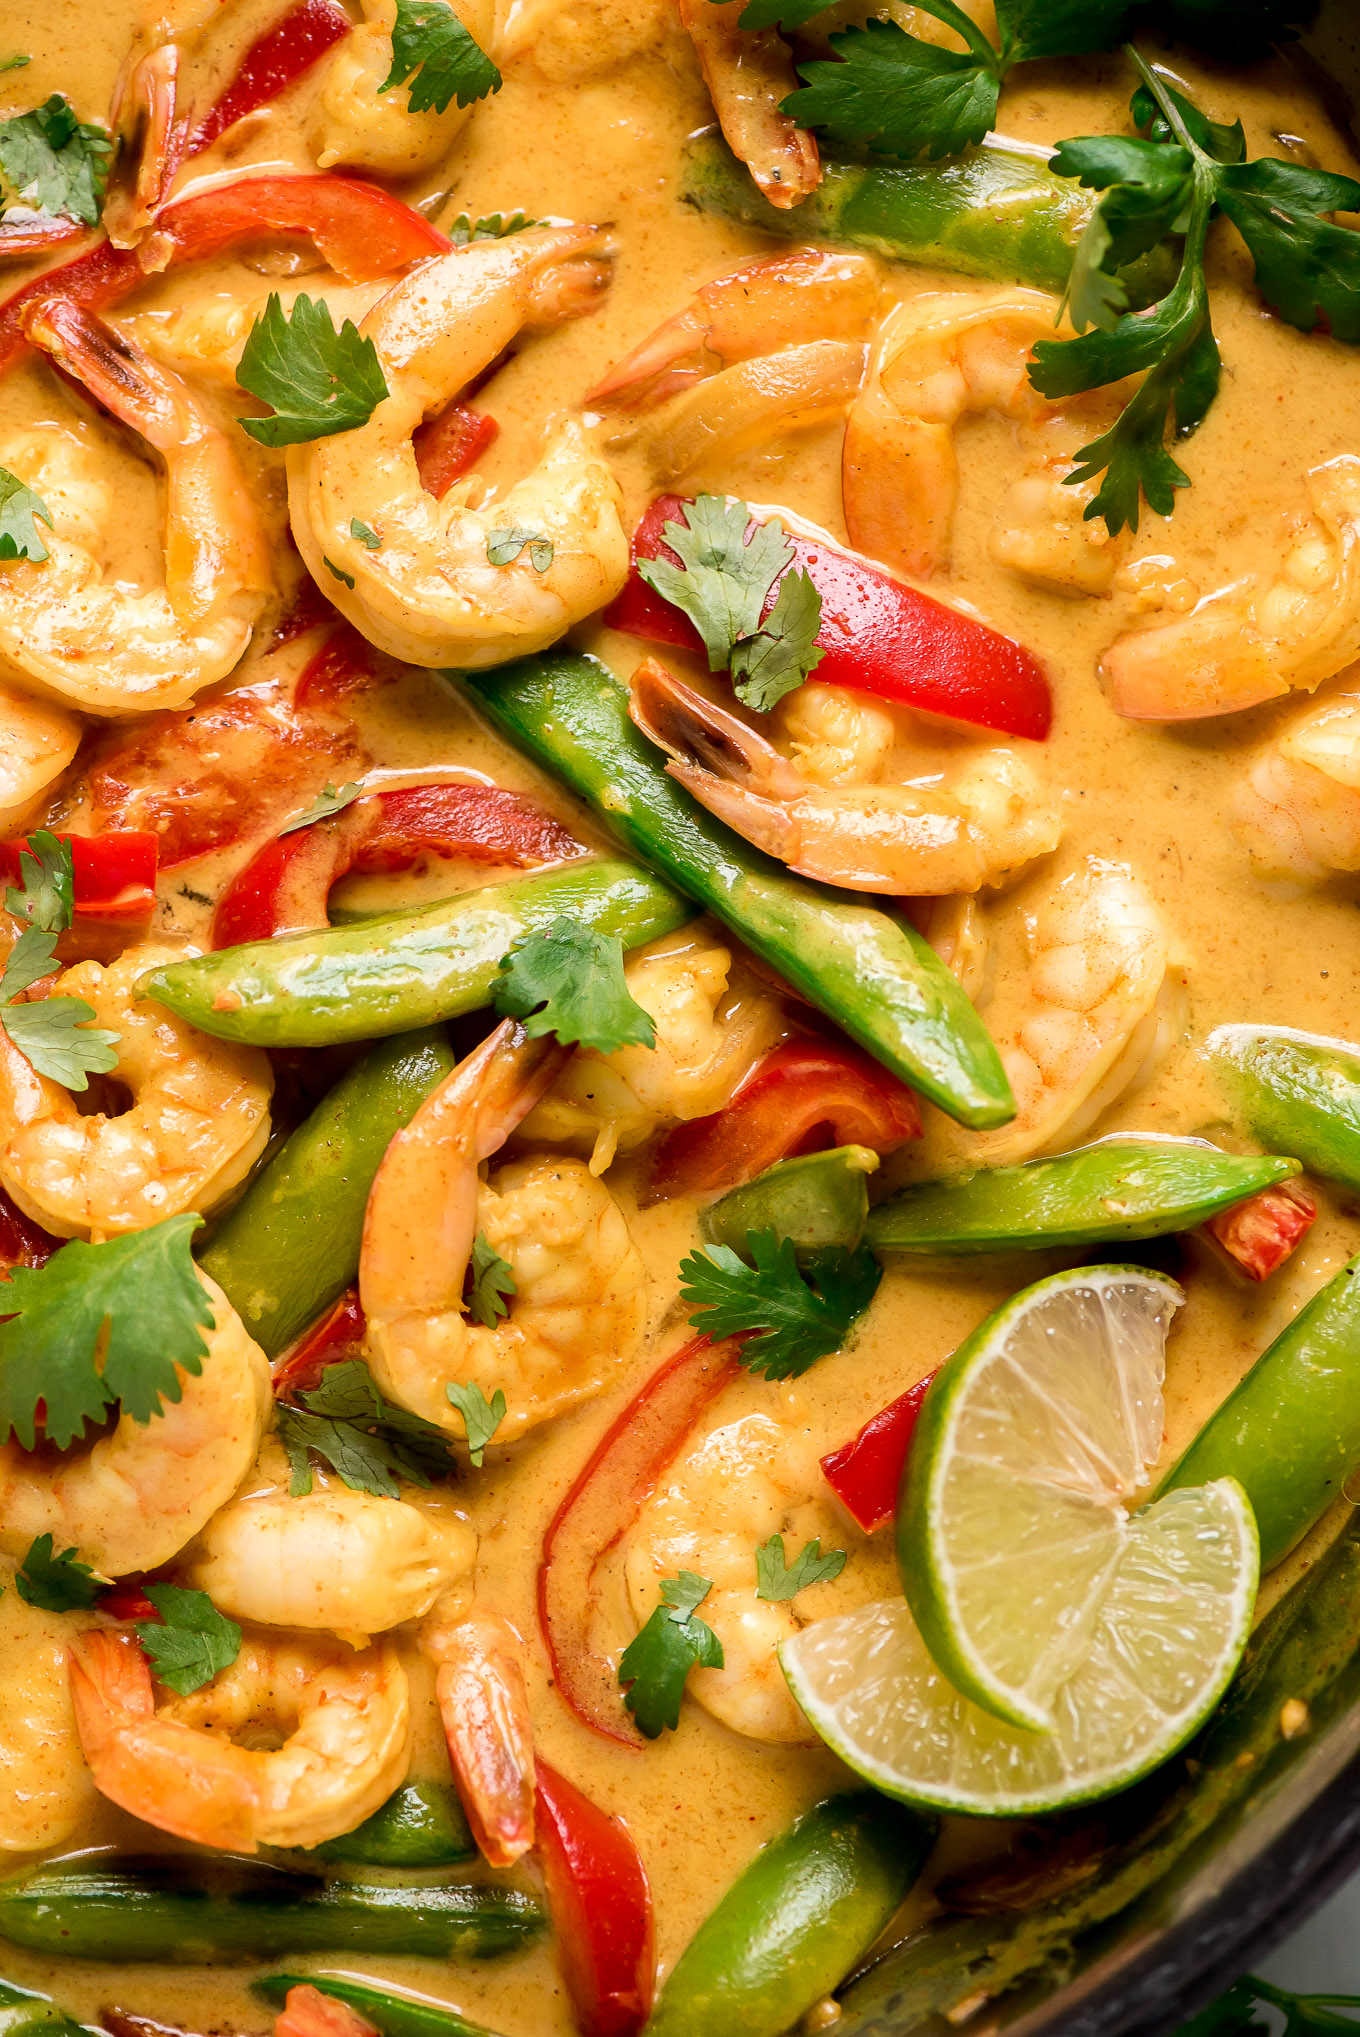 Thai Coconut Shrimp Curry in a pan with red bell peppers, sugar snap peas, cilantro, and lime.